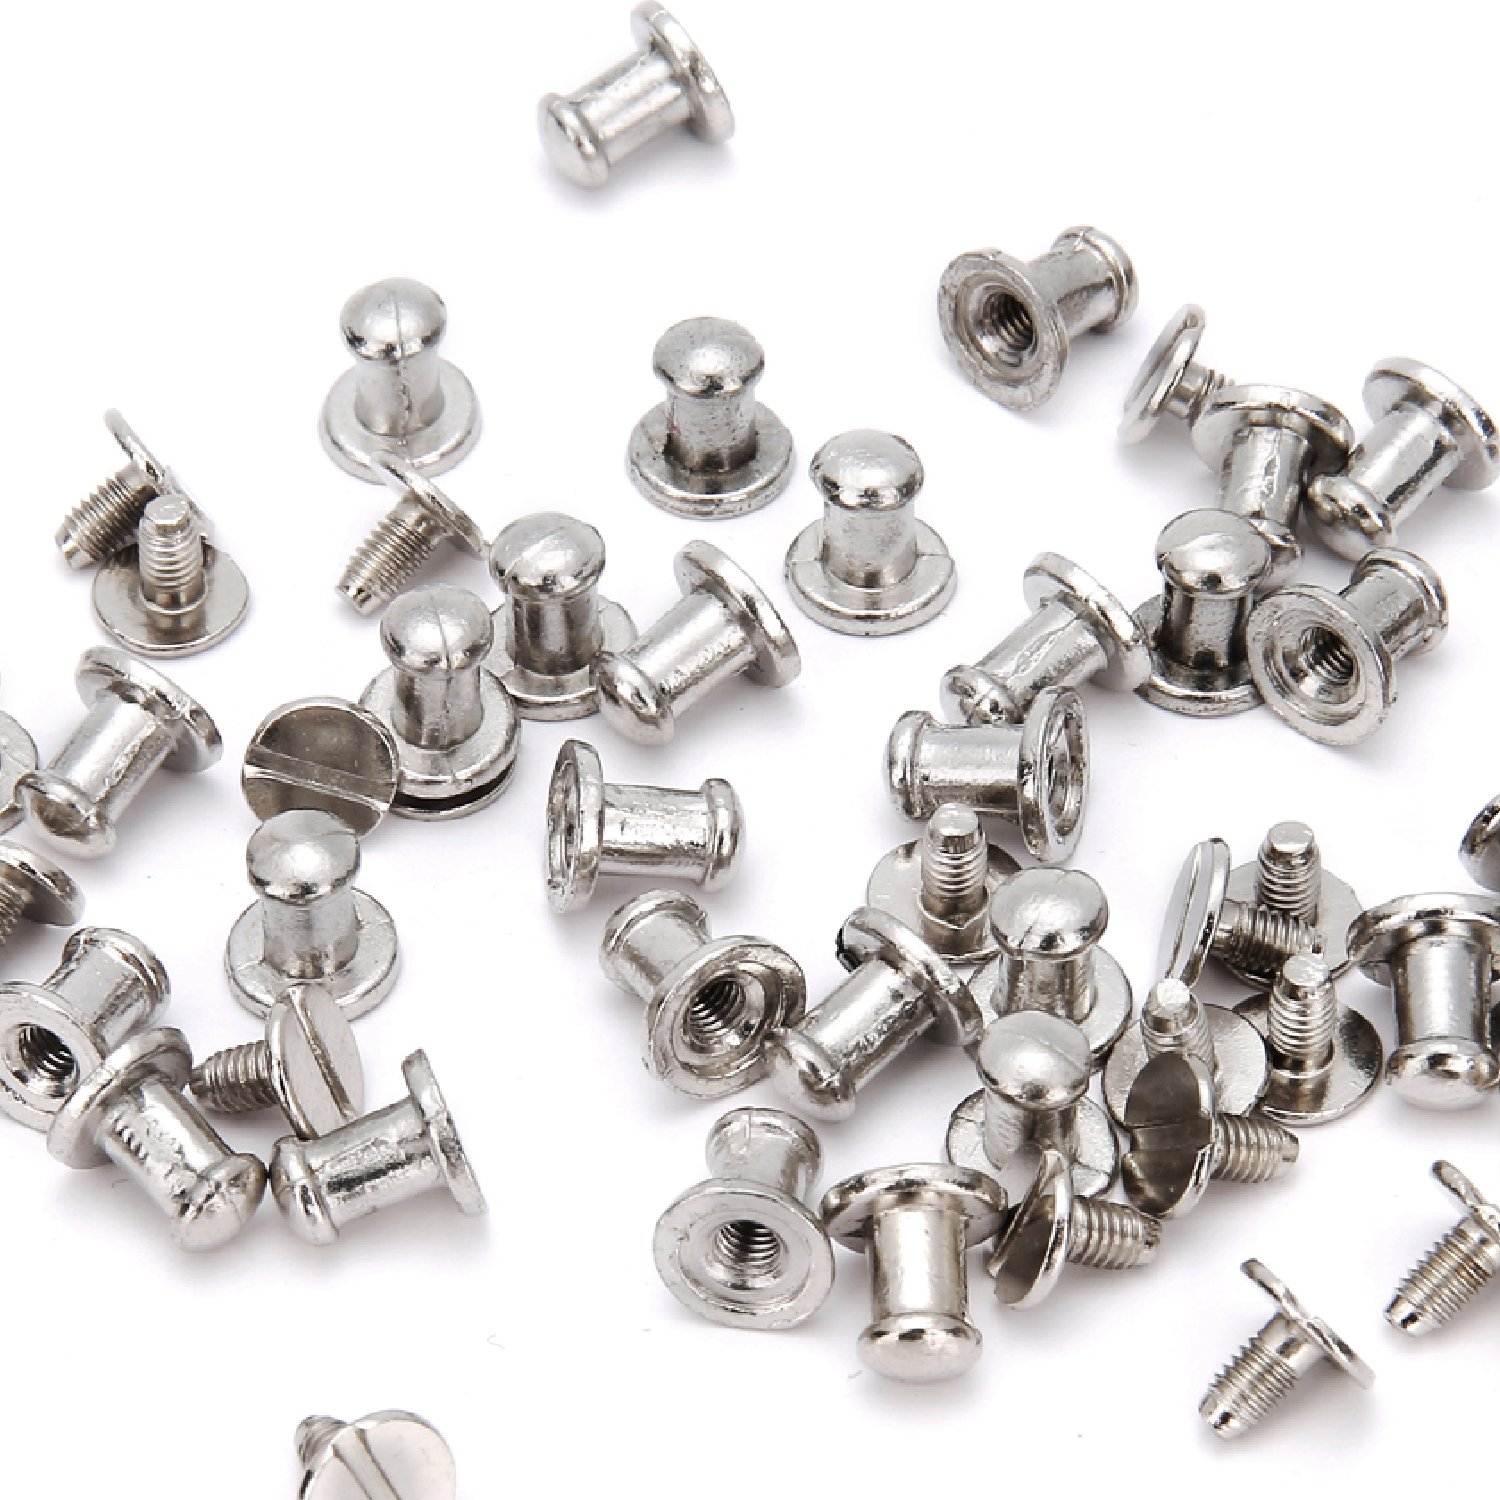 RUBYCA 500 Sets Silver Color Button Spike and Studs Metal Screw-Back Leather-craft DIY 8MM X 8MM